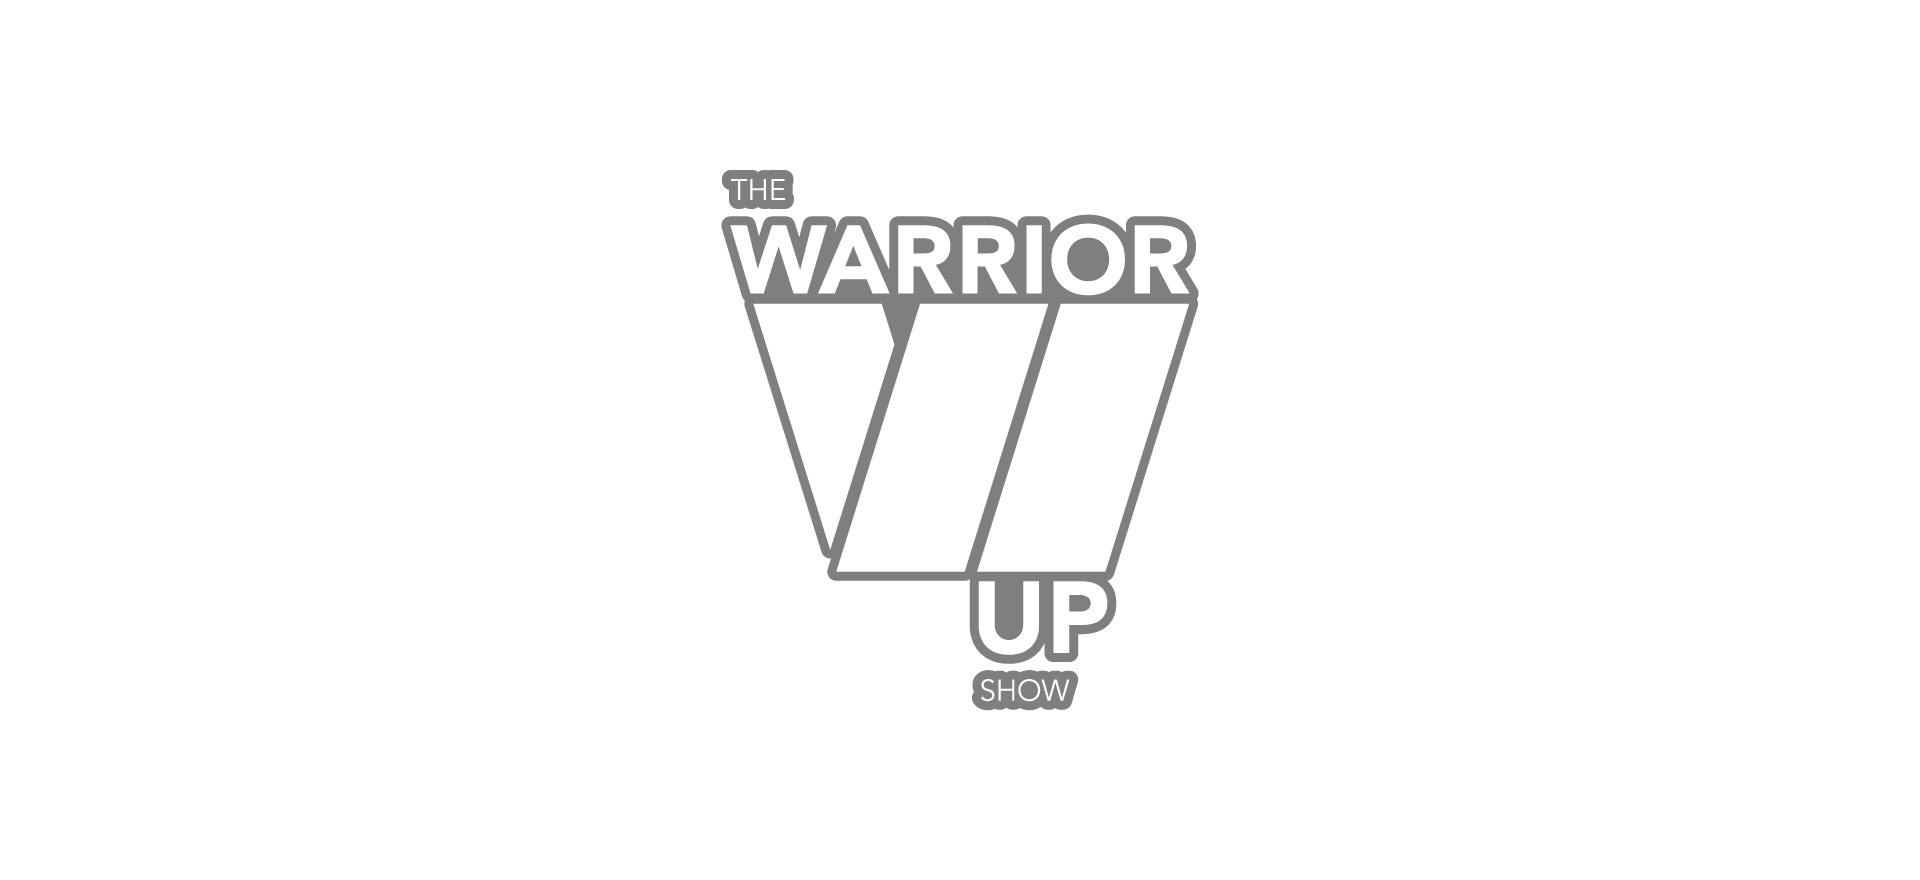 The Warrior Up Show